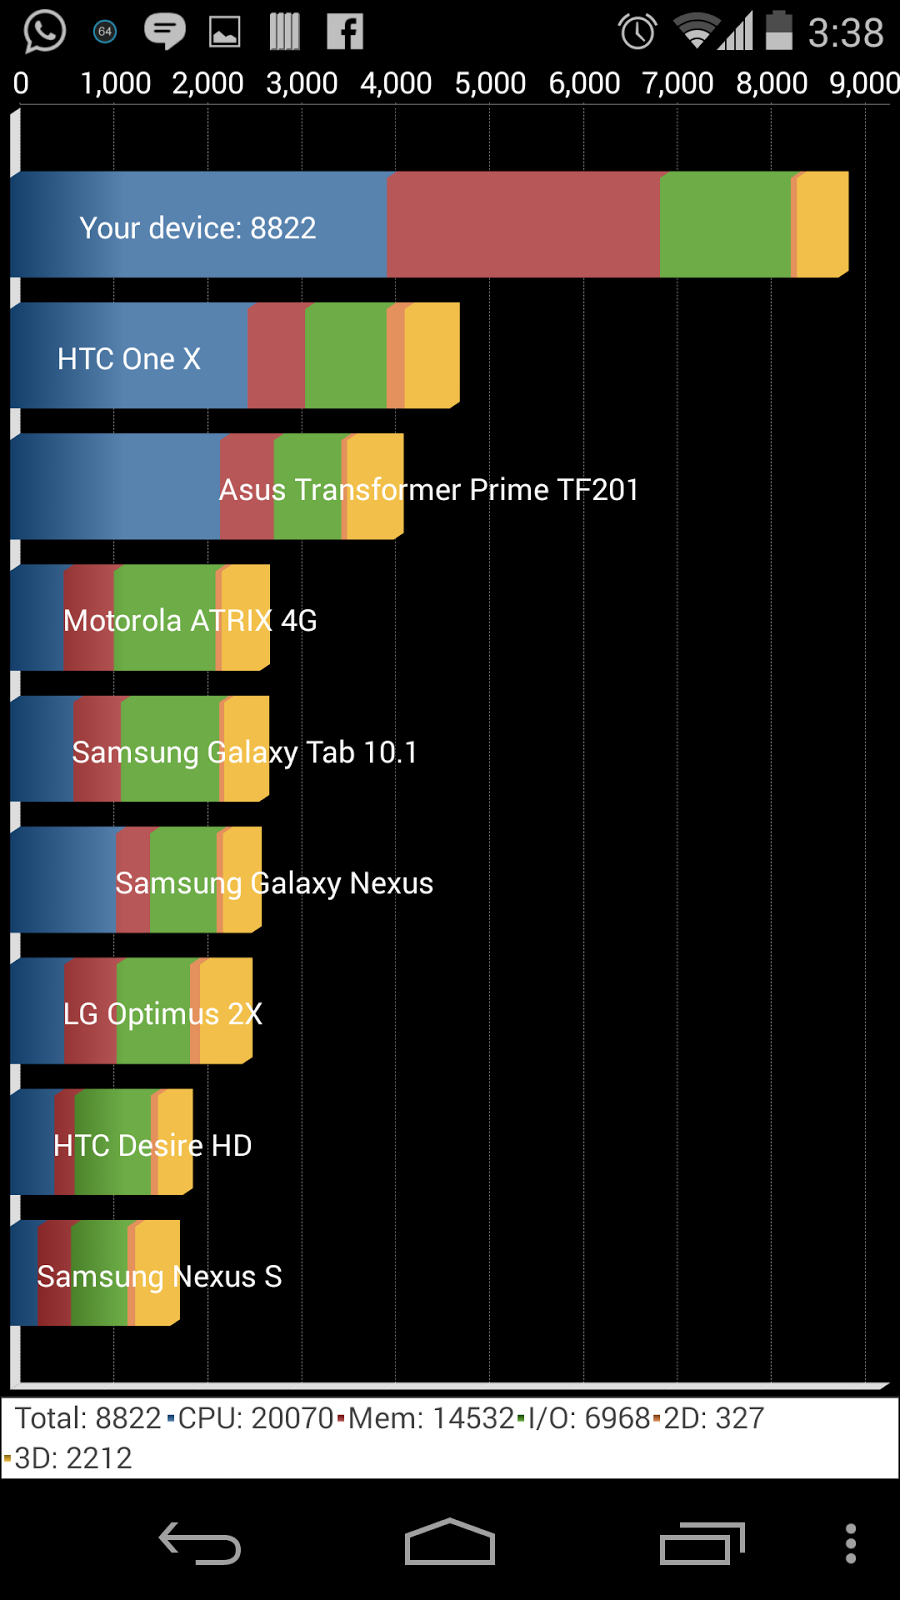 Google+LG+Nexus+5+Android+KitKat+Review+Handson+Detailed+Benchmark++%252826%2529.png